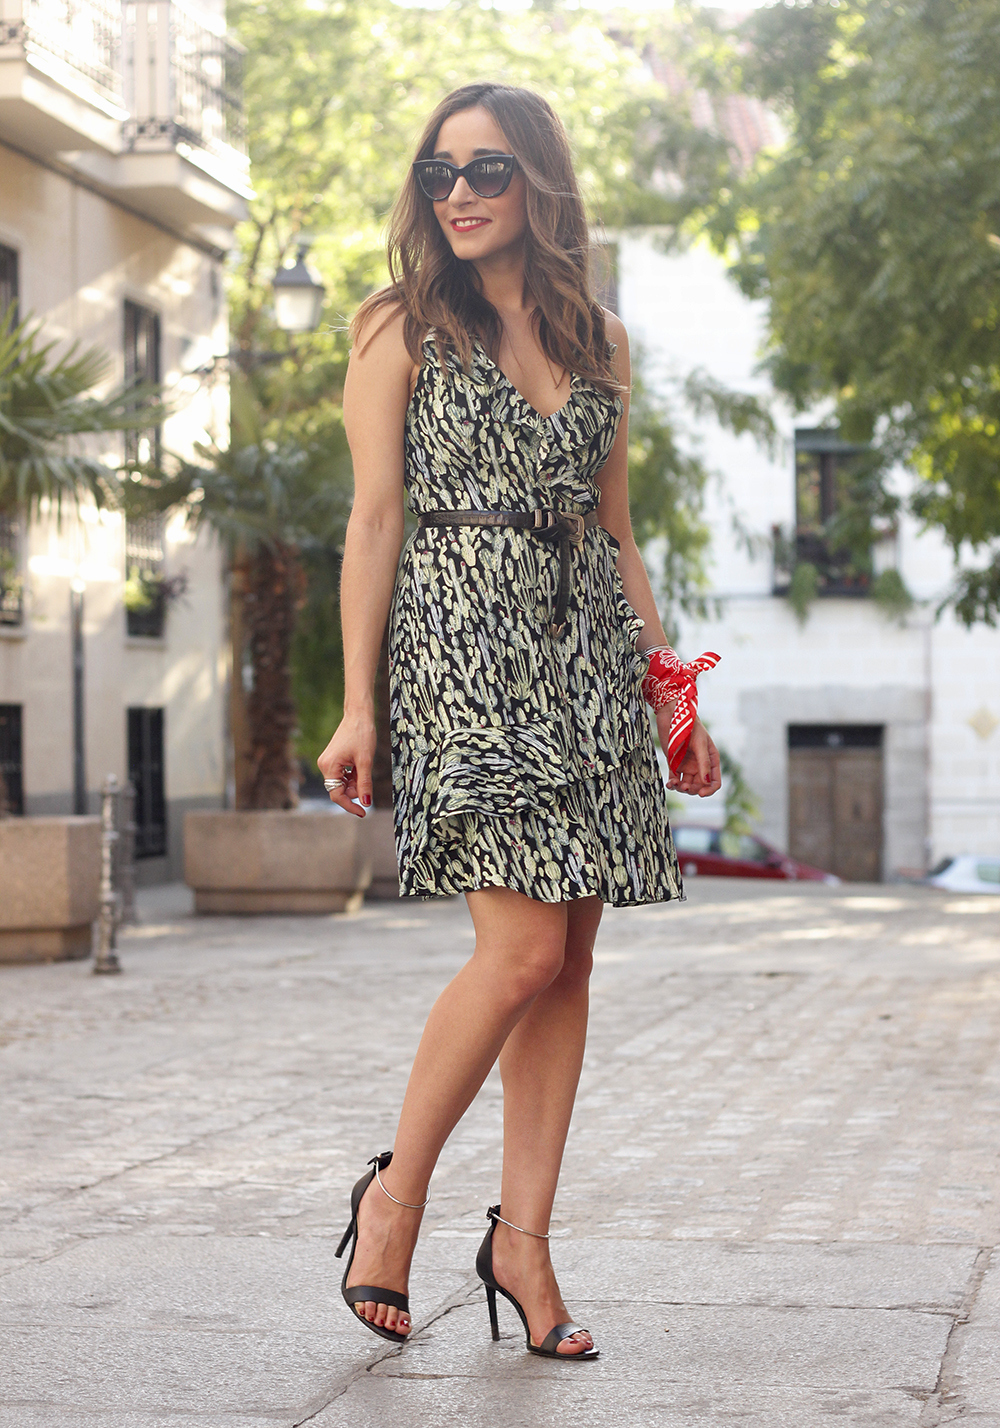 summer dress with cactus prints black sandals sunnies outfit style 17